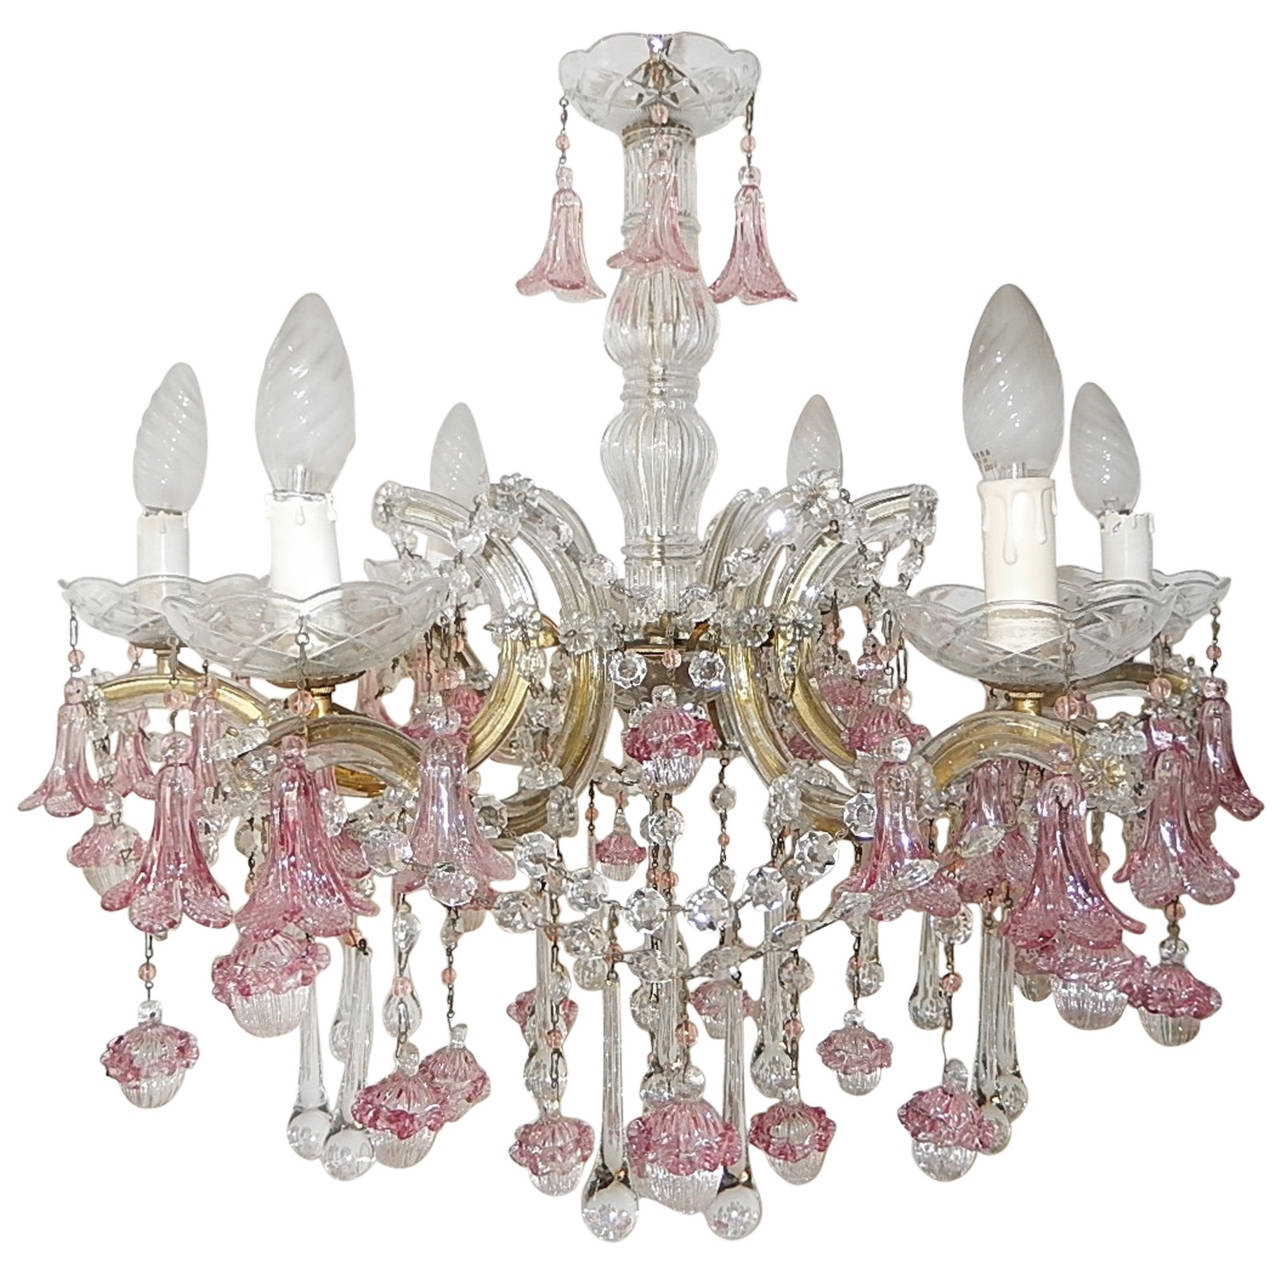 12 collection of fuschia chandelier 1920 french fuchsia murano flowers and balls chandelier at 1stdibs regarding fuschia chandelier 1 aloadofball Image collections